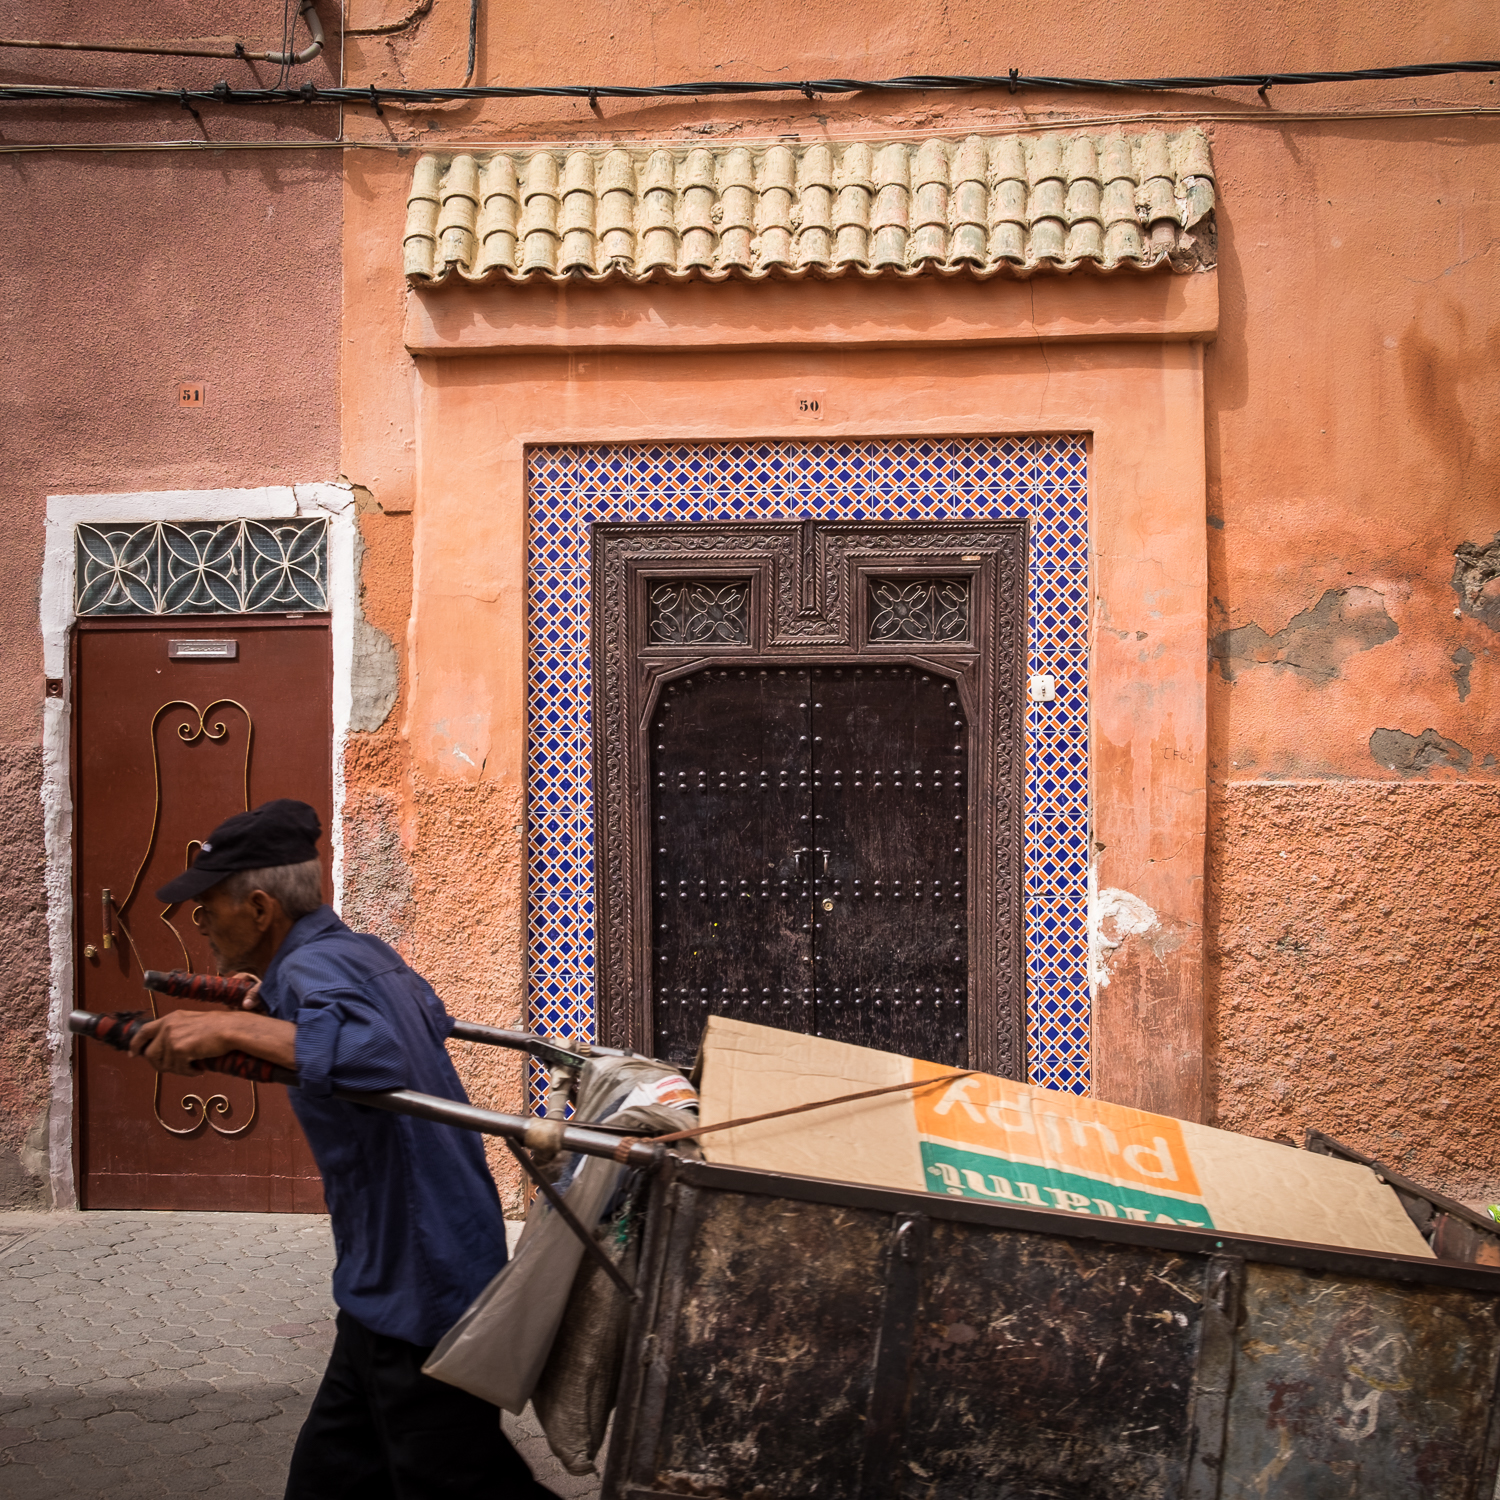 Christopher-Swan-Marrakech-22.jpg